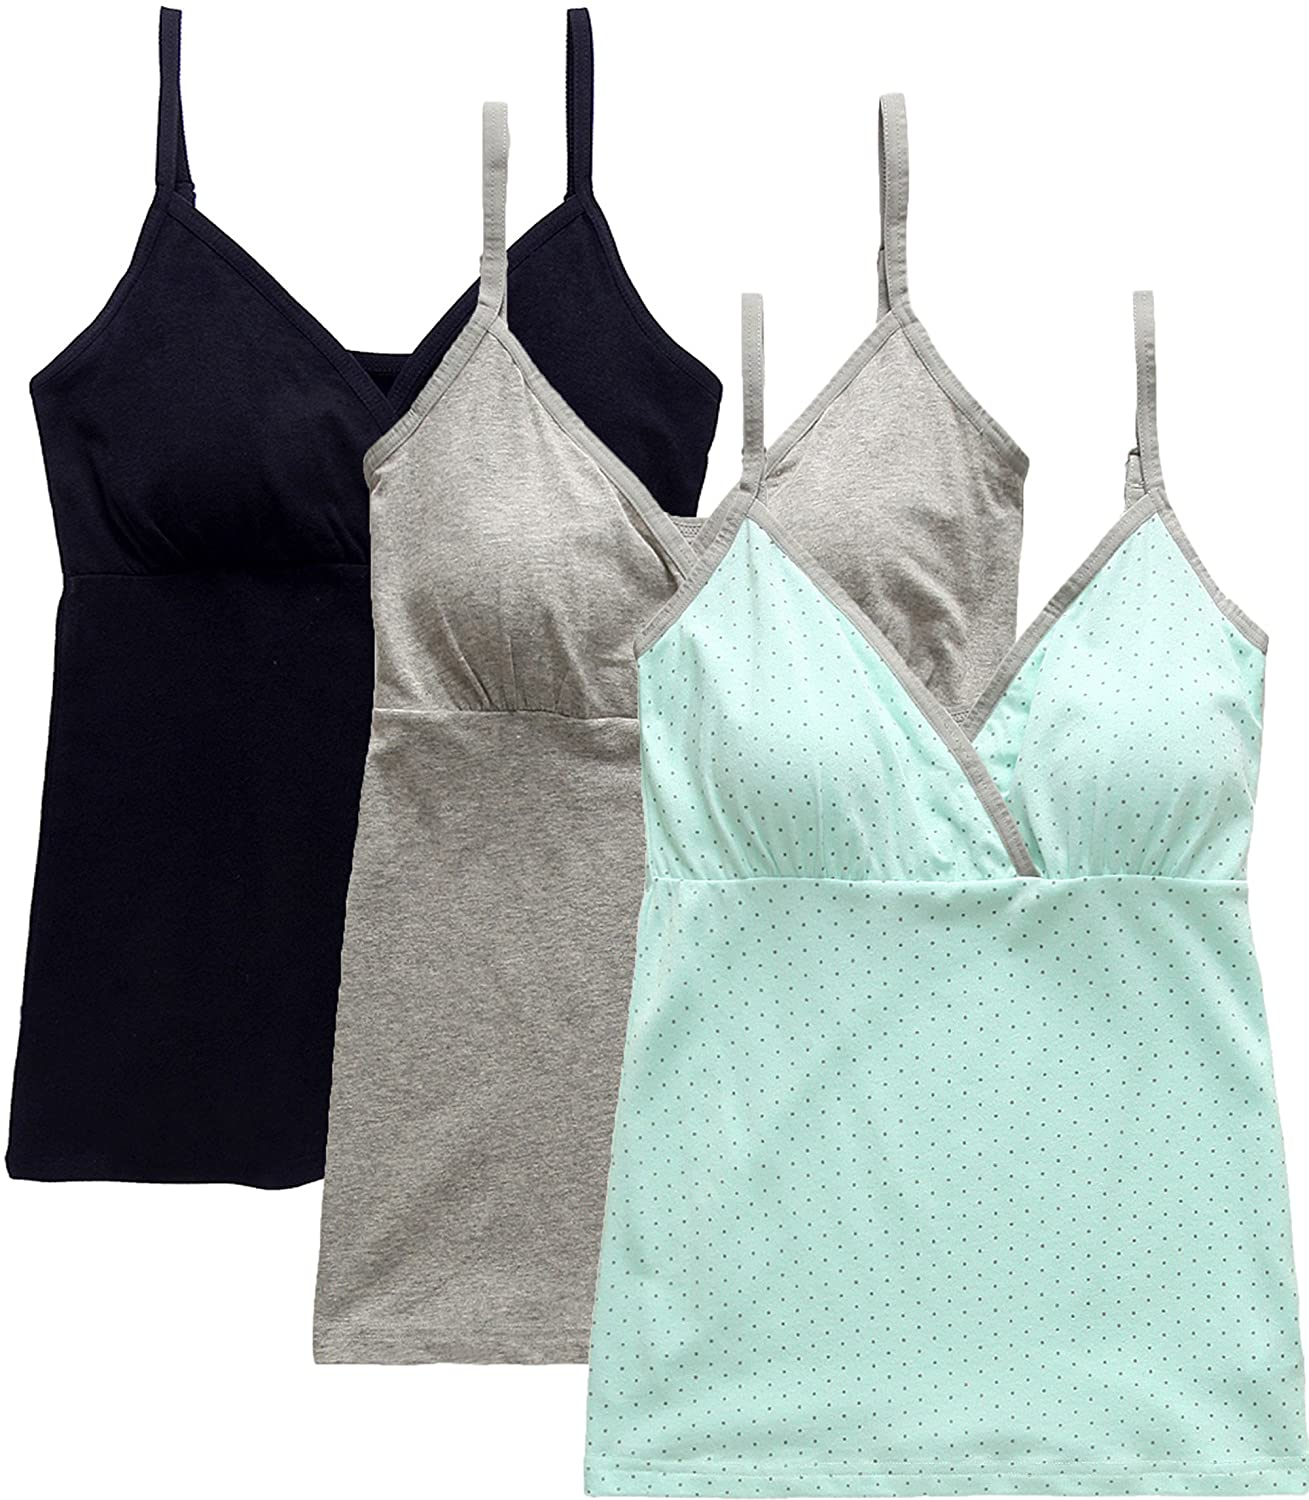 033870ac120ba5 ... Medium  Fits for Weight 130-155 lb  Large  Fits for Weight 150-170 lb) Nursing  Cami Suitable  0-5 MONTHS Pregnant And Postpartum Breast-Feeding